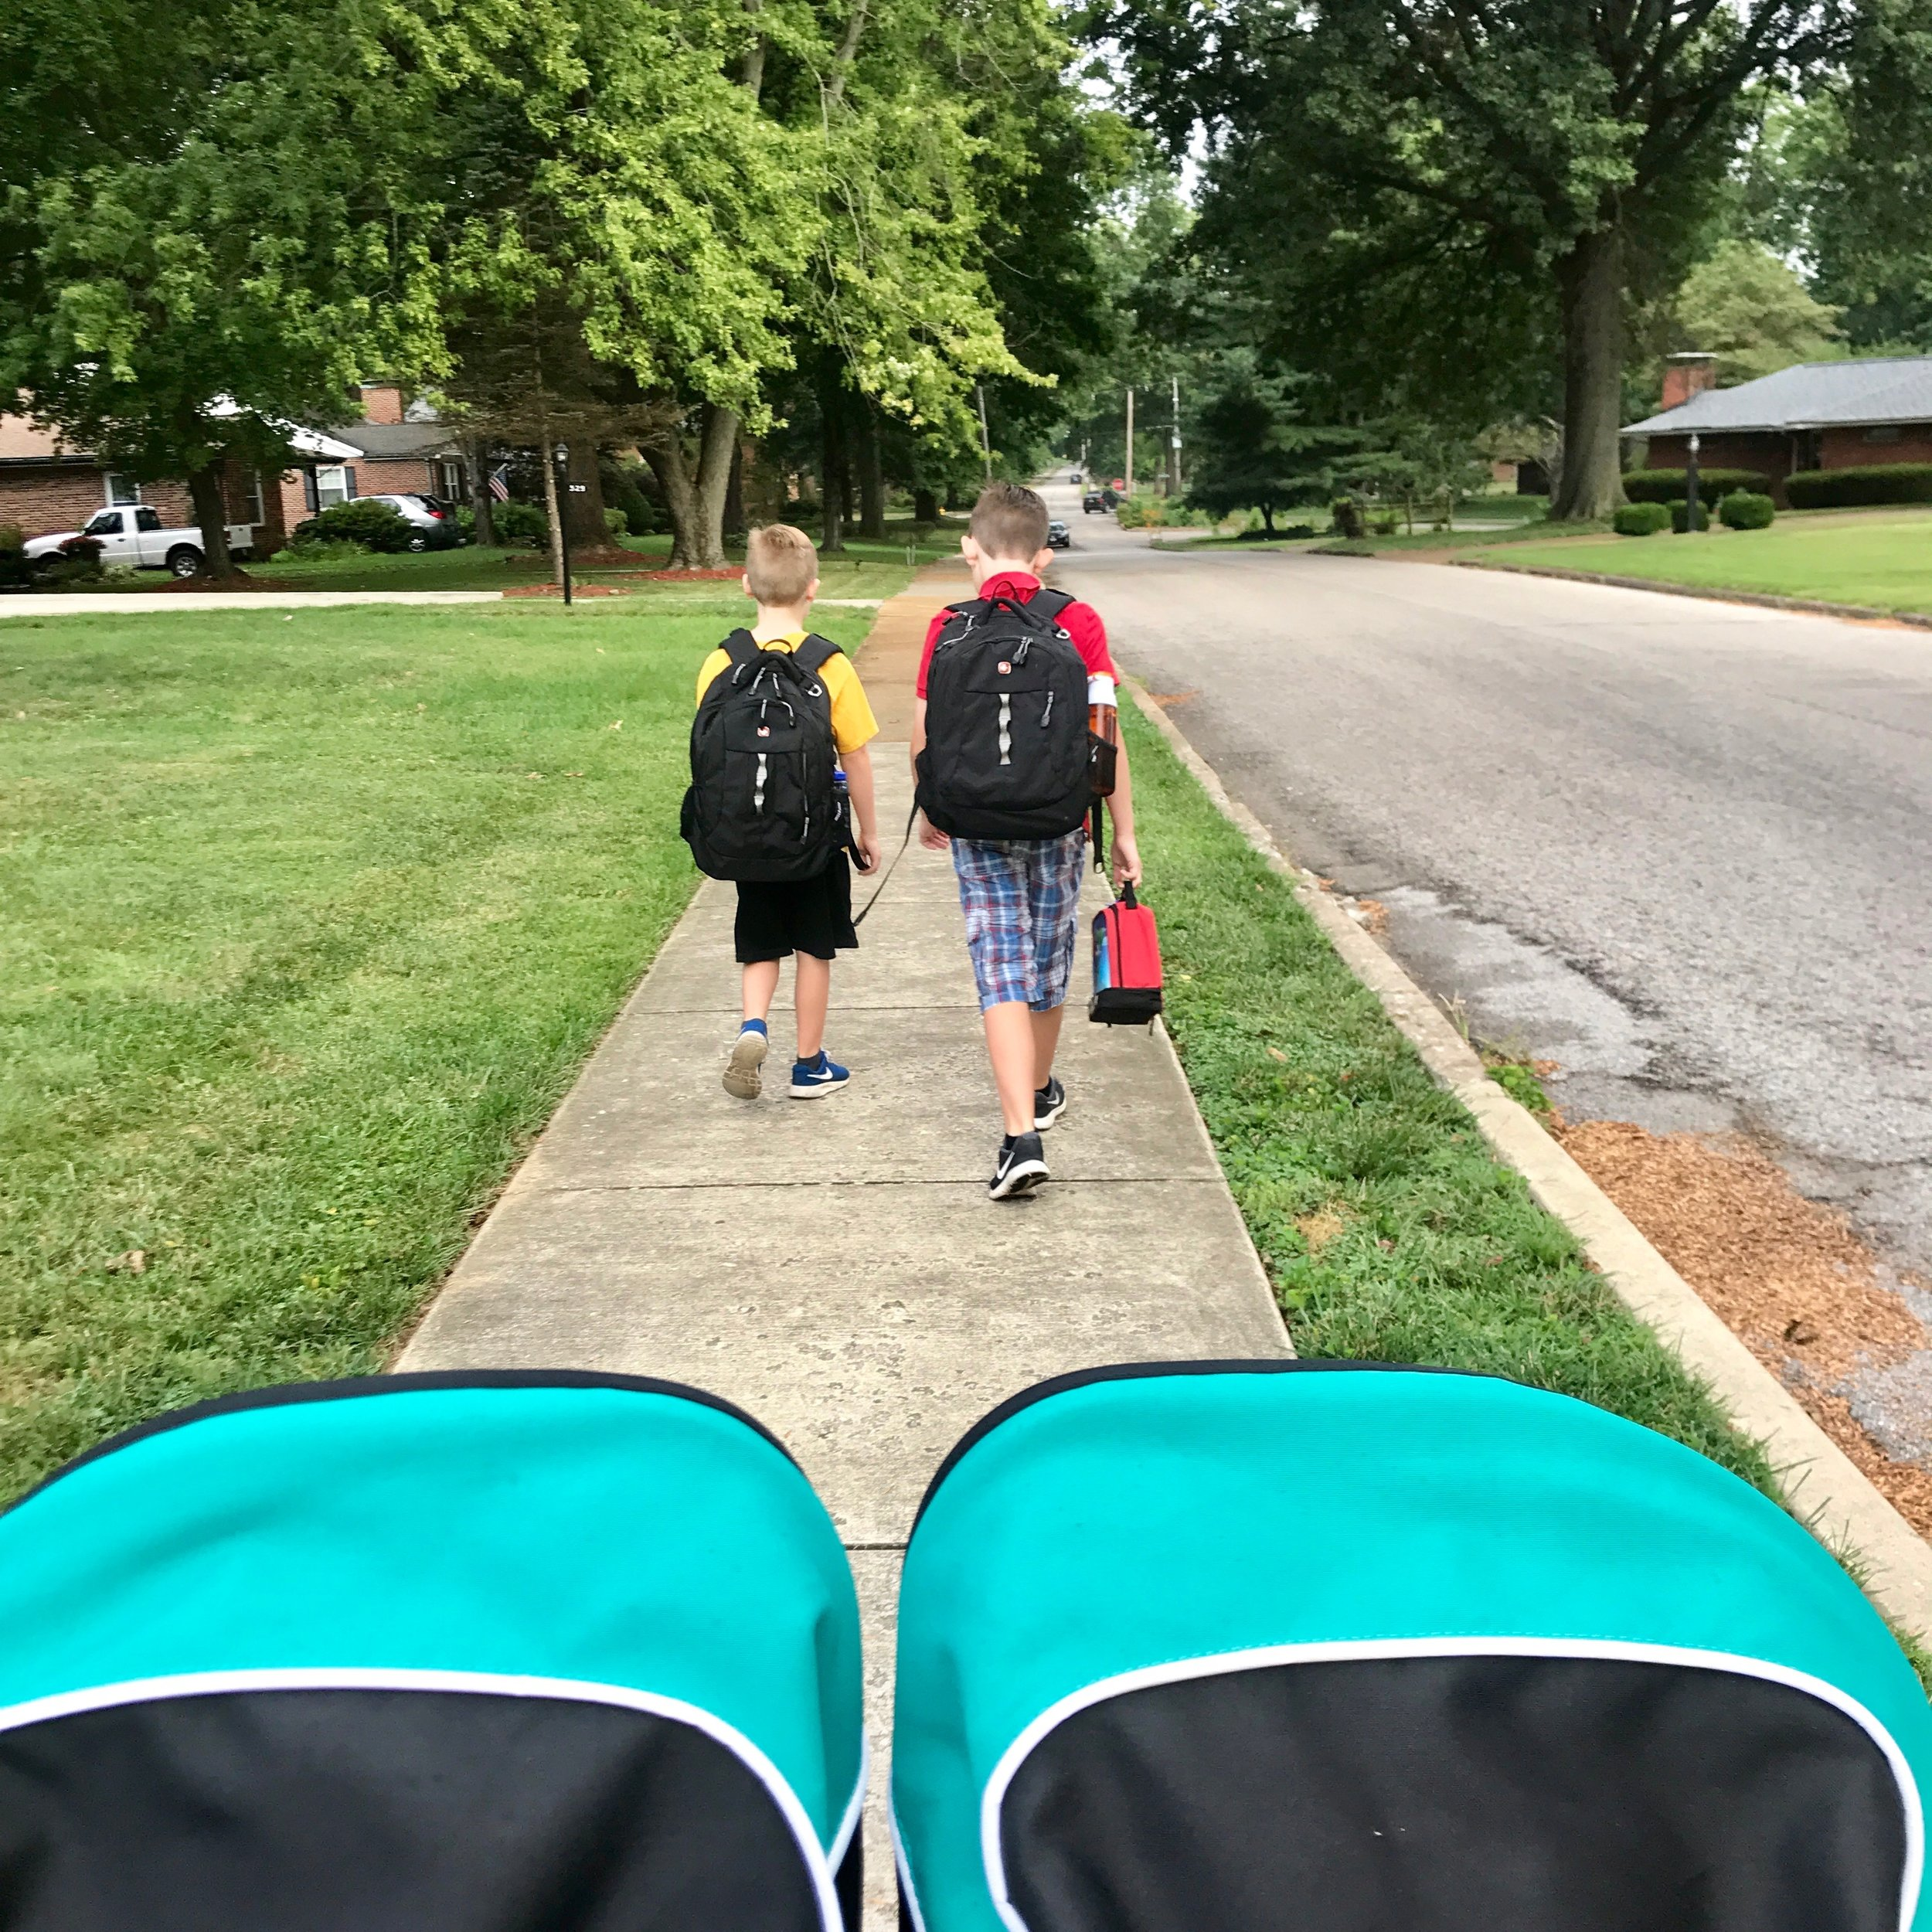 We are loving the cooler temps and walk to school most days still.